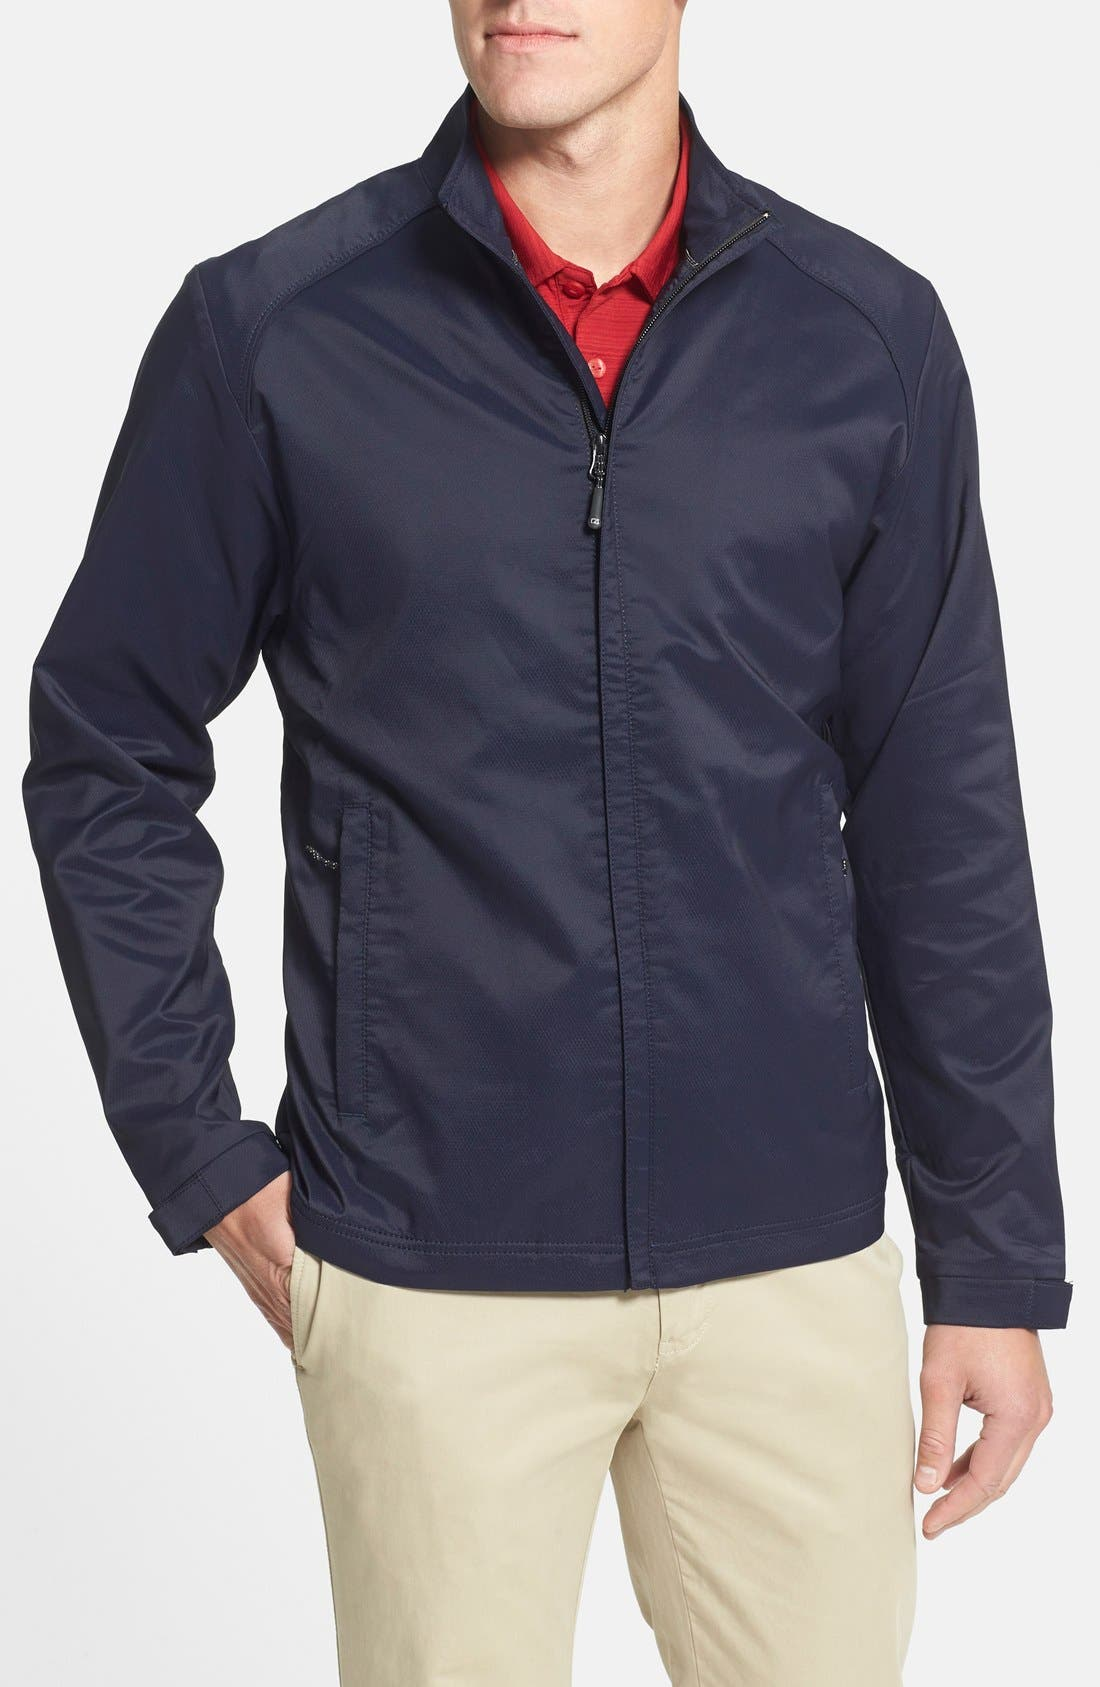 Main Image - Cutter & Buck 'Blakely' WeatherTec® Wind & Water Resistant Full Zip Jacket